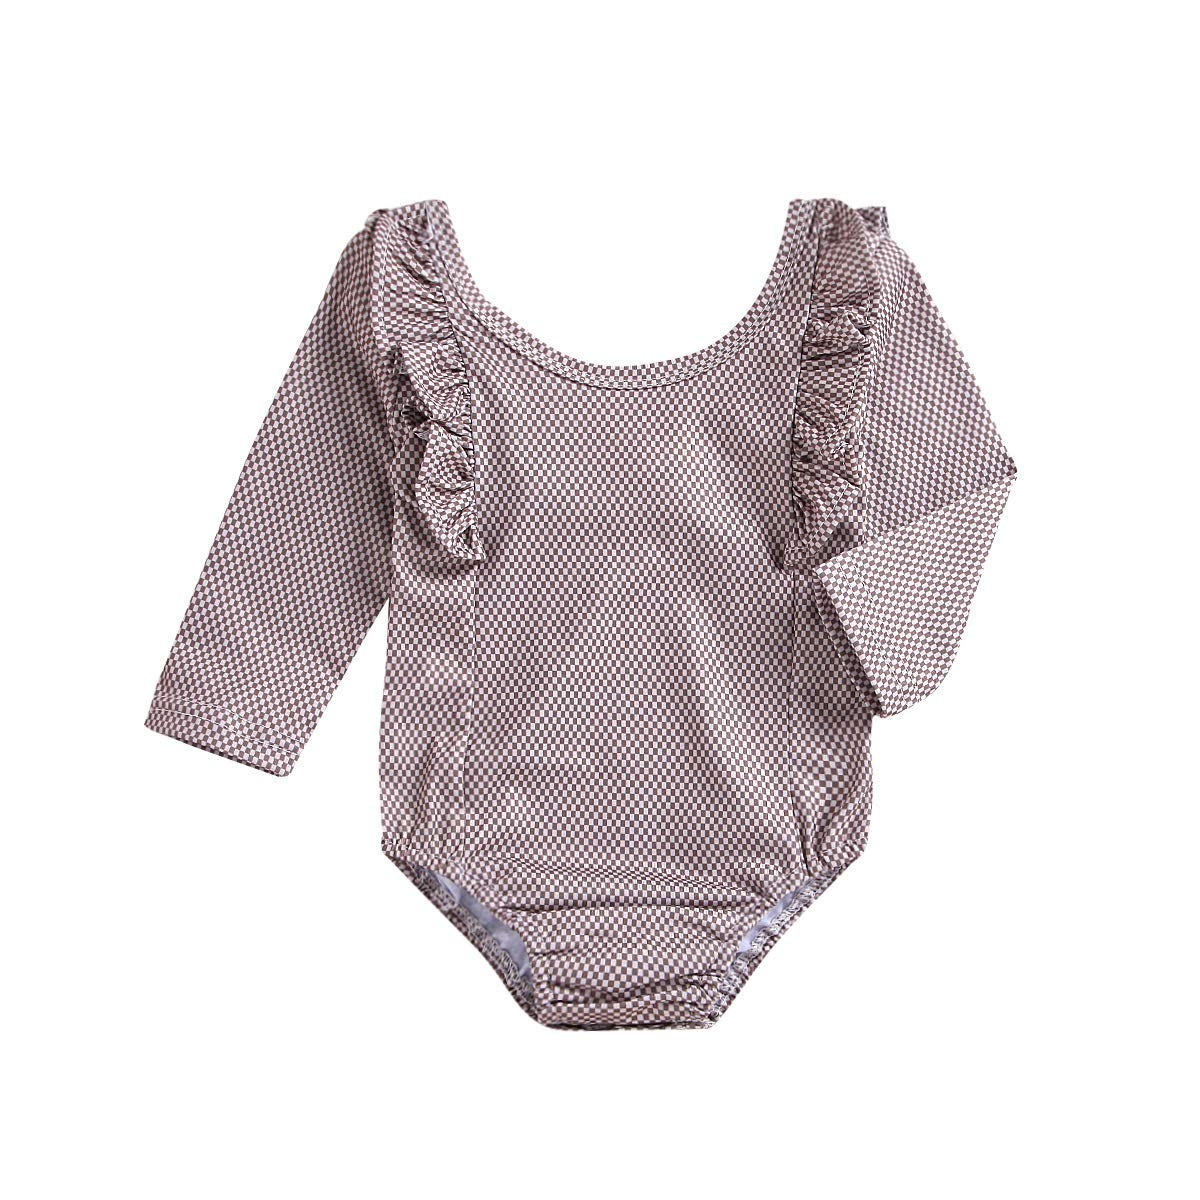 Color : Brown, Size : 90cm HUHUXXYY Newborn Baby Girls Long Sleeves Plaid Ruffles Jumpsuit Plaid Round Neck Romper Sanp Opening Pajamas Girls Daily Outfits